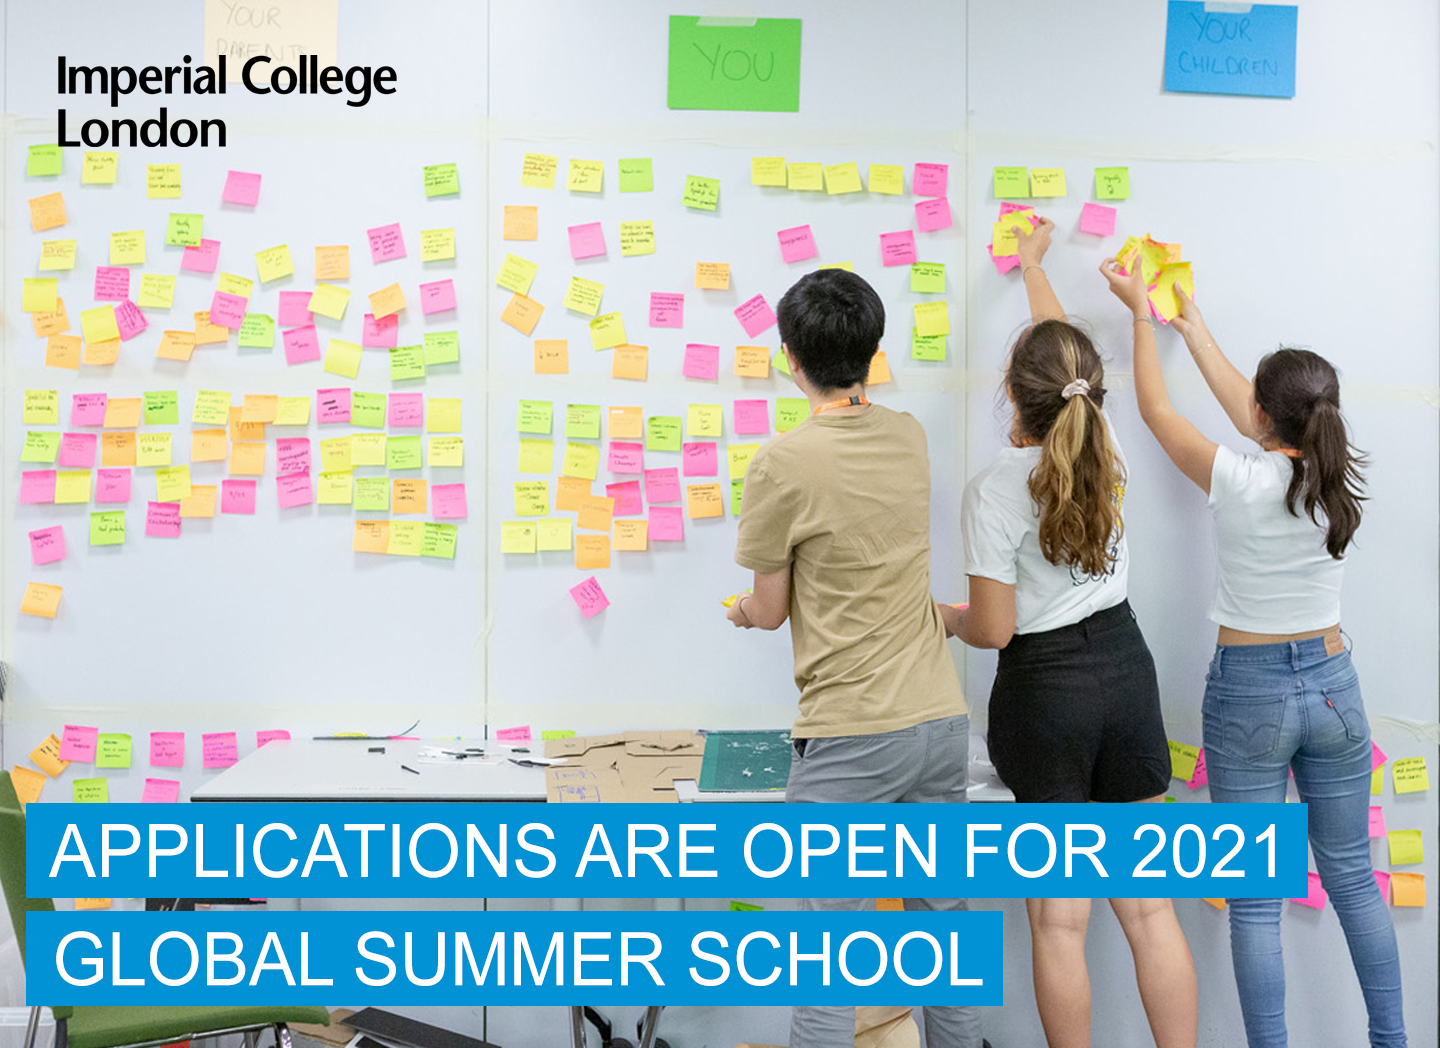 Applications open for 2021 online programme